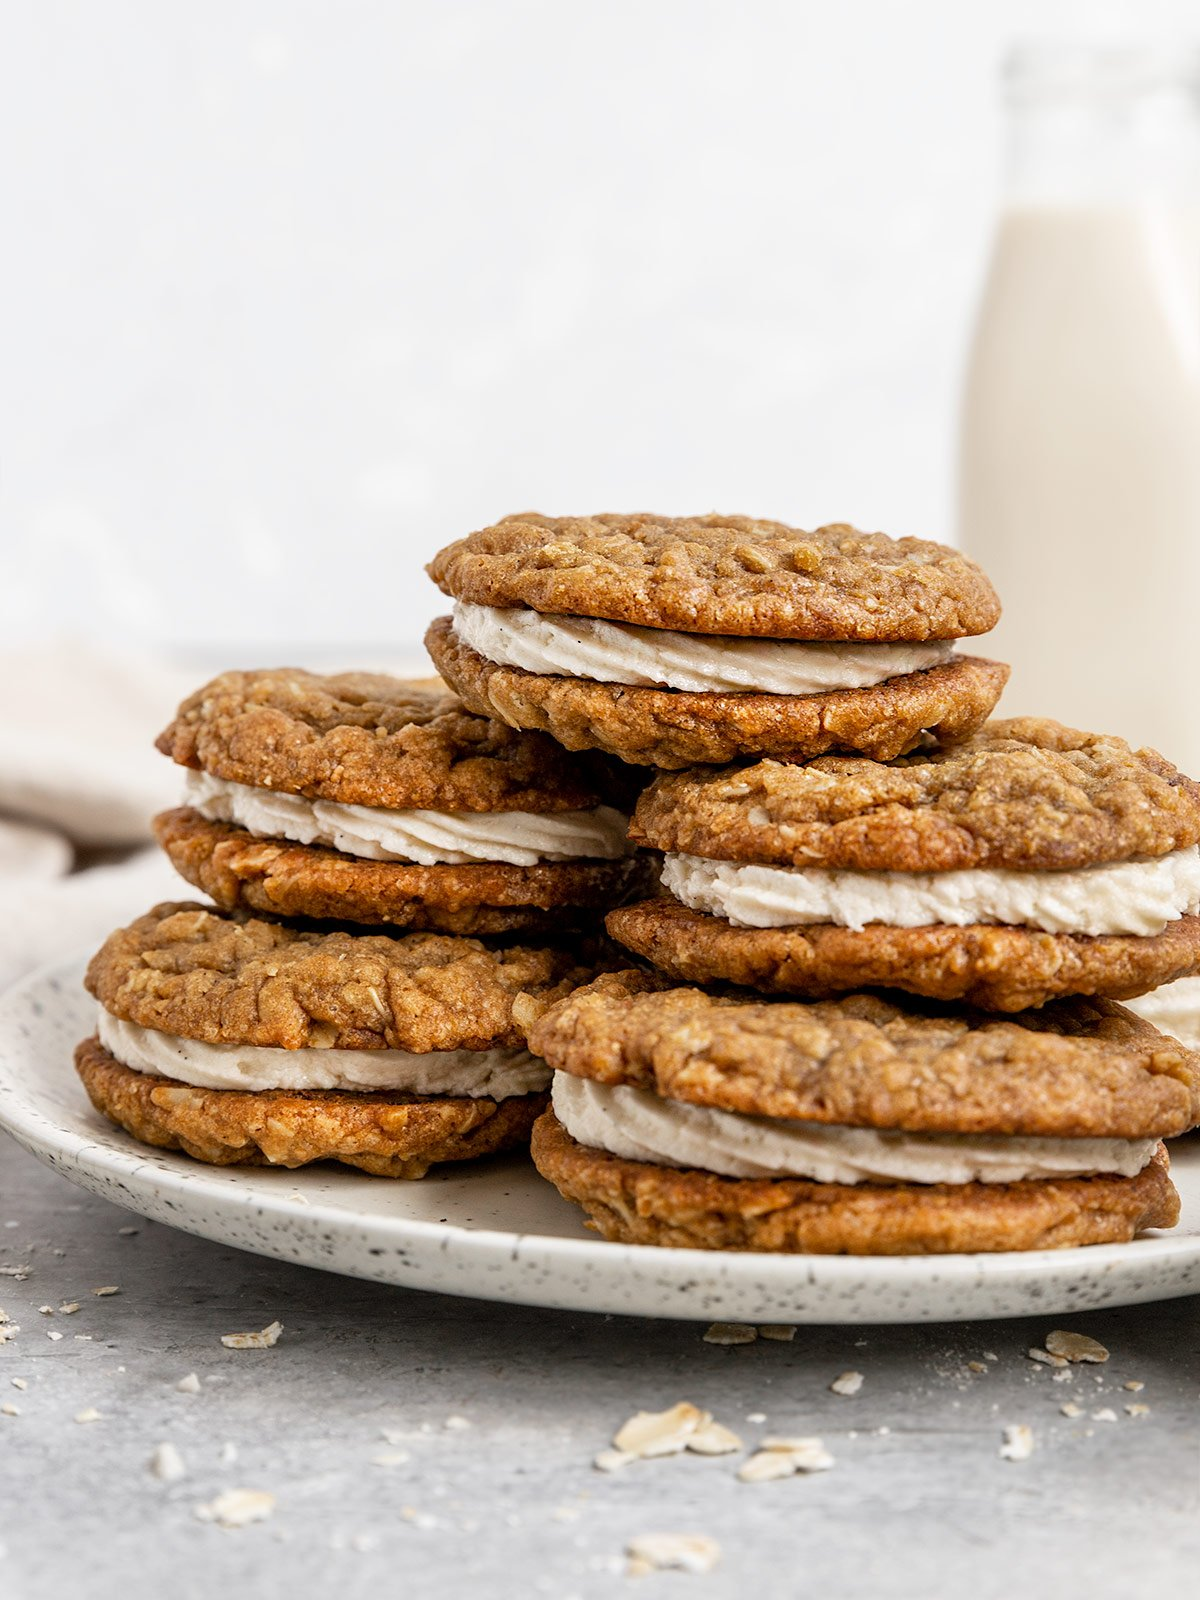 plate of stacked oatmeal cream pies with vanilla buttercream between two oatmeal cookies